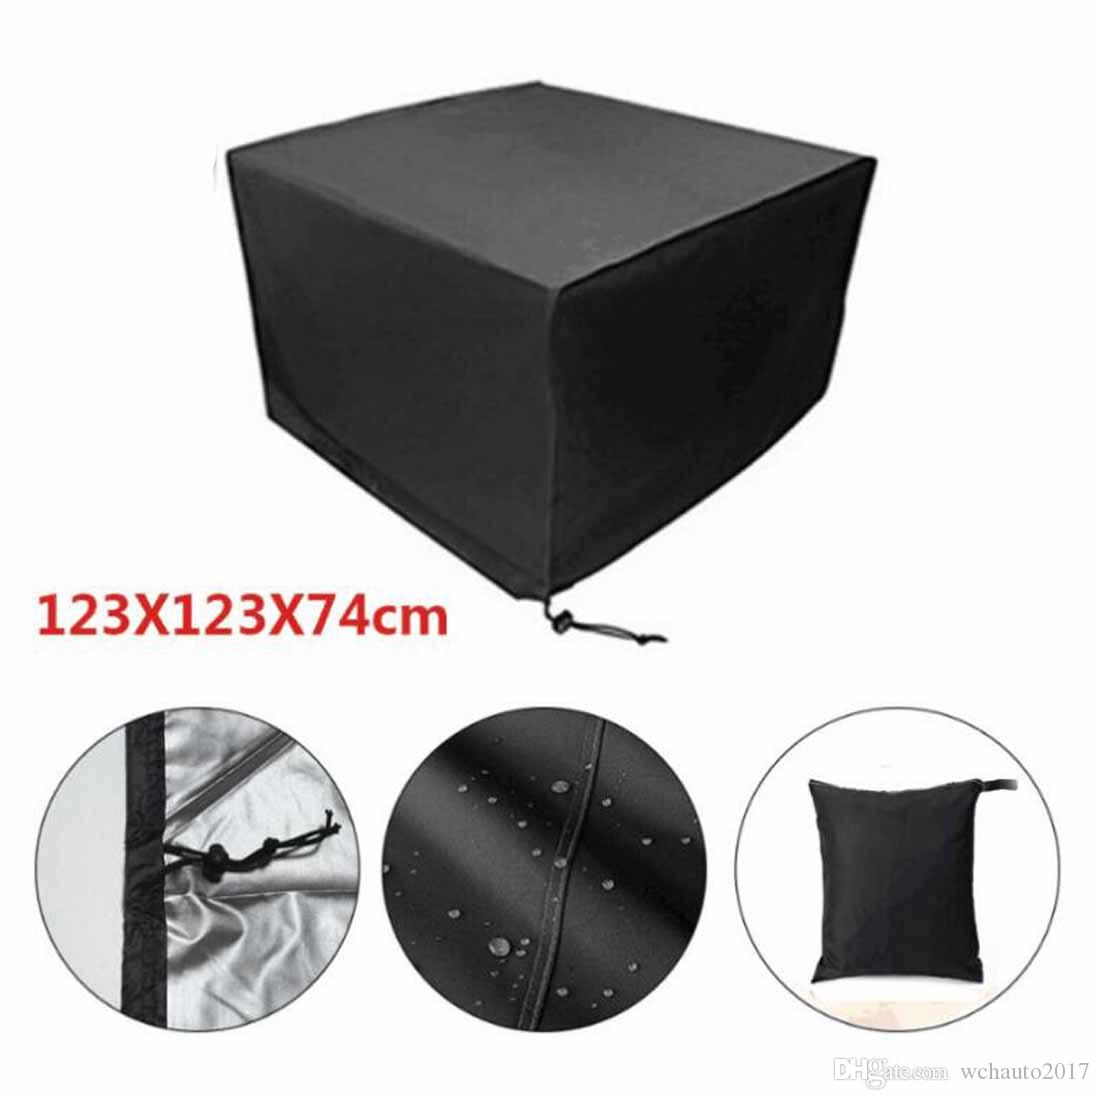 Best Outdoor Furniture Cover Square Black Waterproof Garden Dustproof Table With Storage Bags For 120 74cm Under 11 25 Dhgate